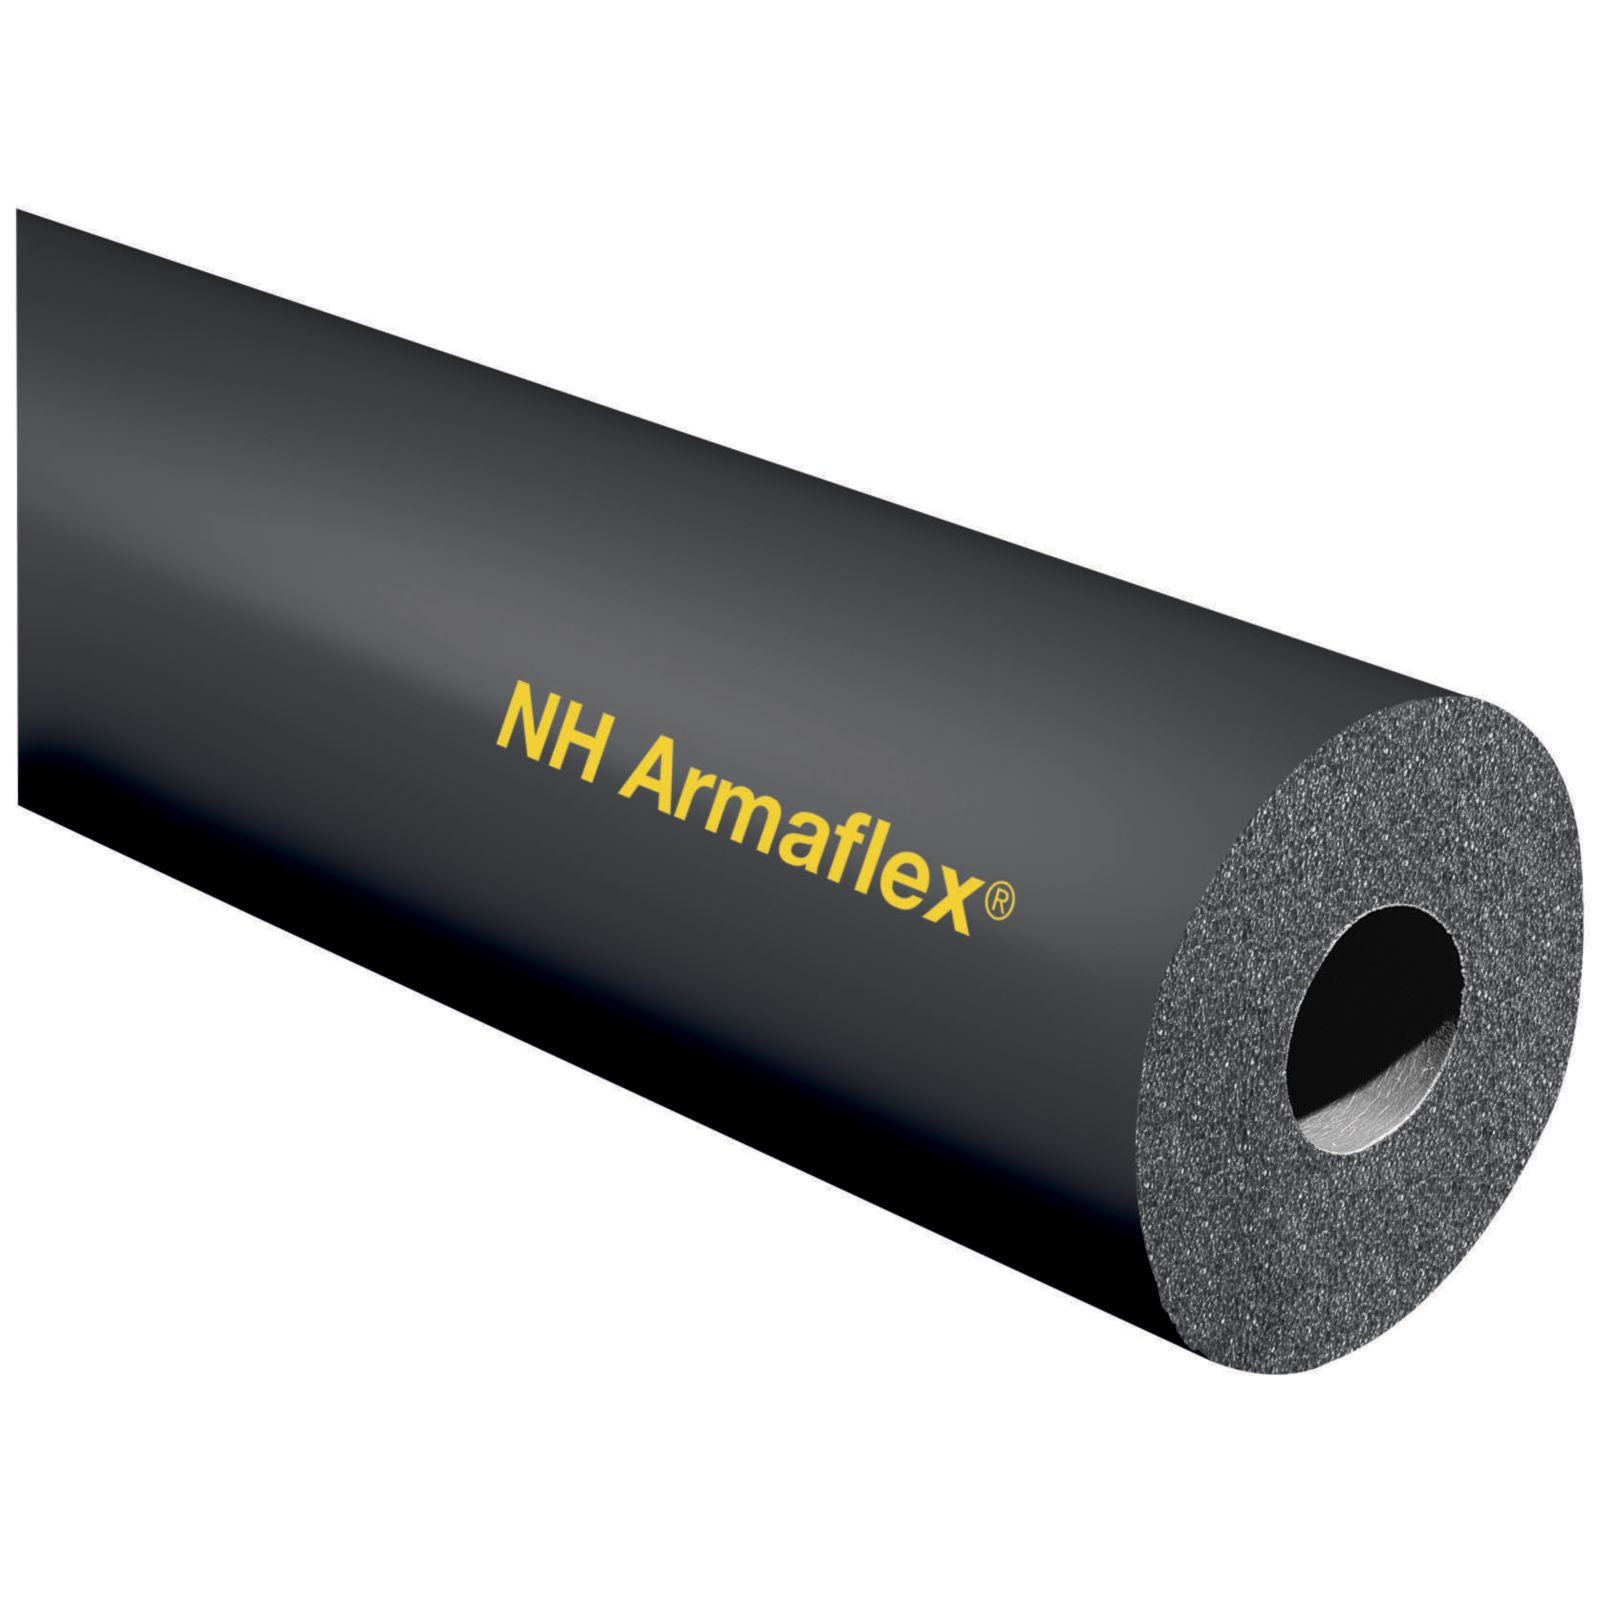 "Armacell ACT11812 - AC Accoflexa® Pipe Insulation, 1 1/8"" I.D. X 1/2"" Wall Thickness (Nominal) X 6 Foot Length"